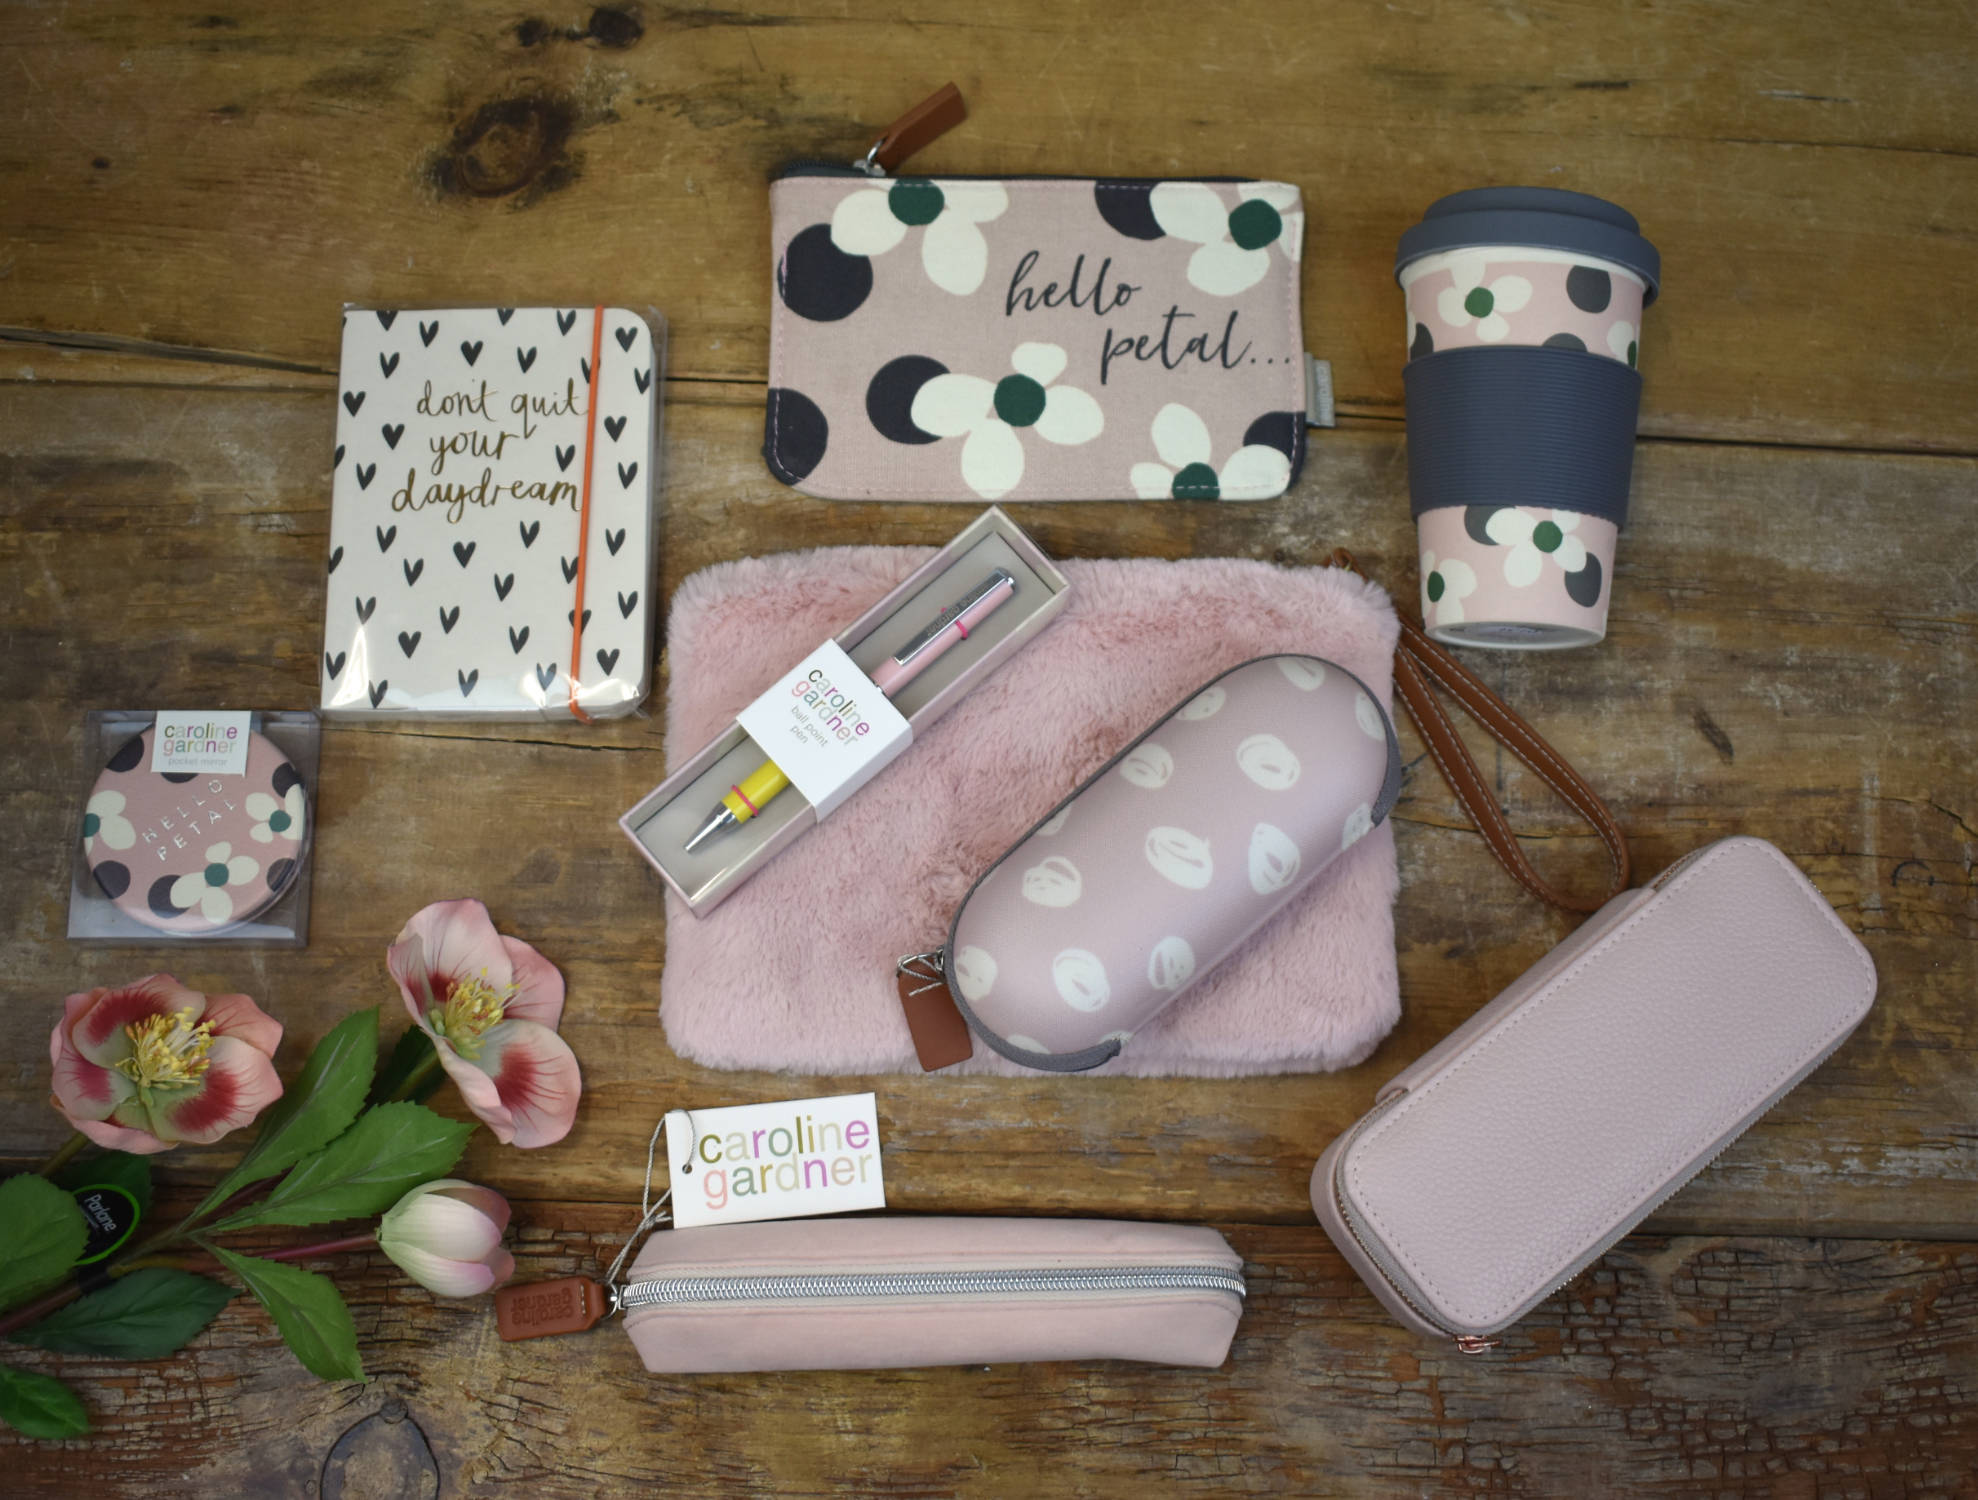 Pink Caroline Gardner accessories including 'don't quit your daydream' note book, 'hello petal' floral spot glasses pouch, pencil case and travel jewellery box.